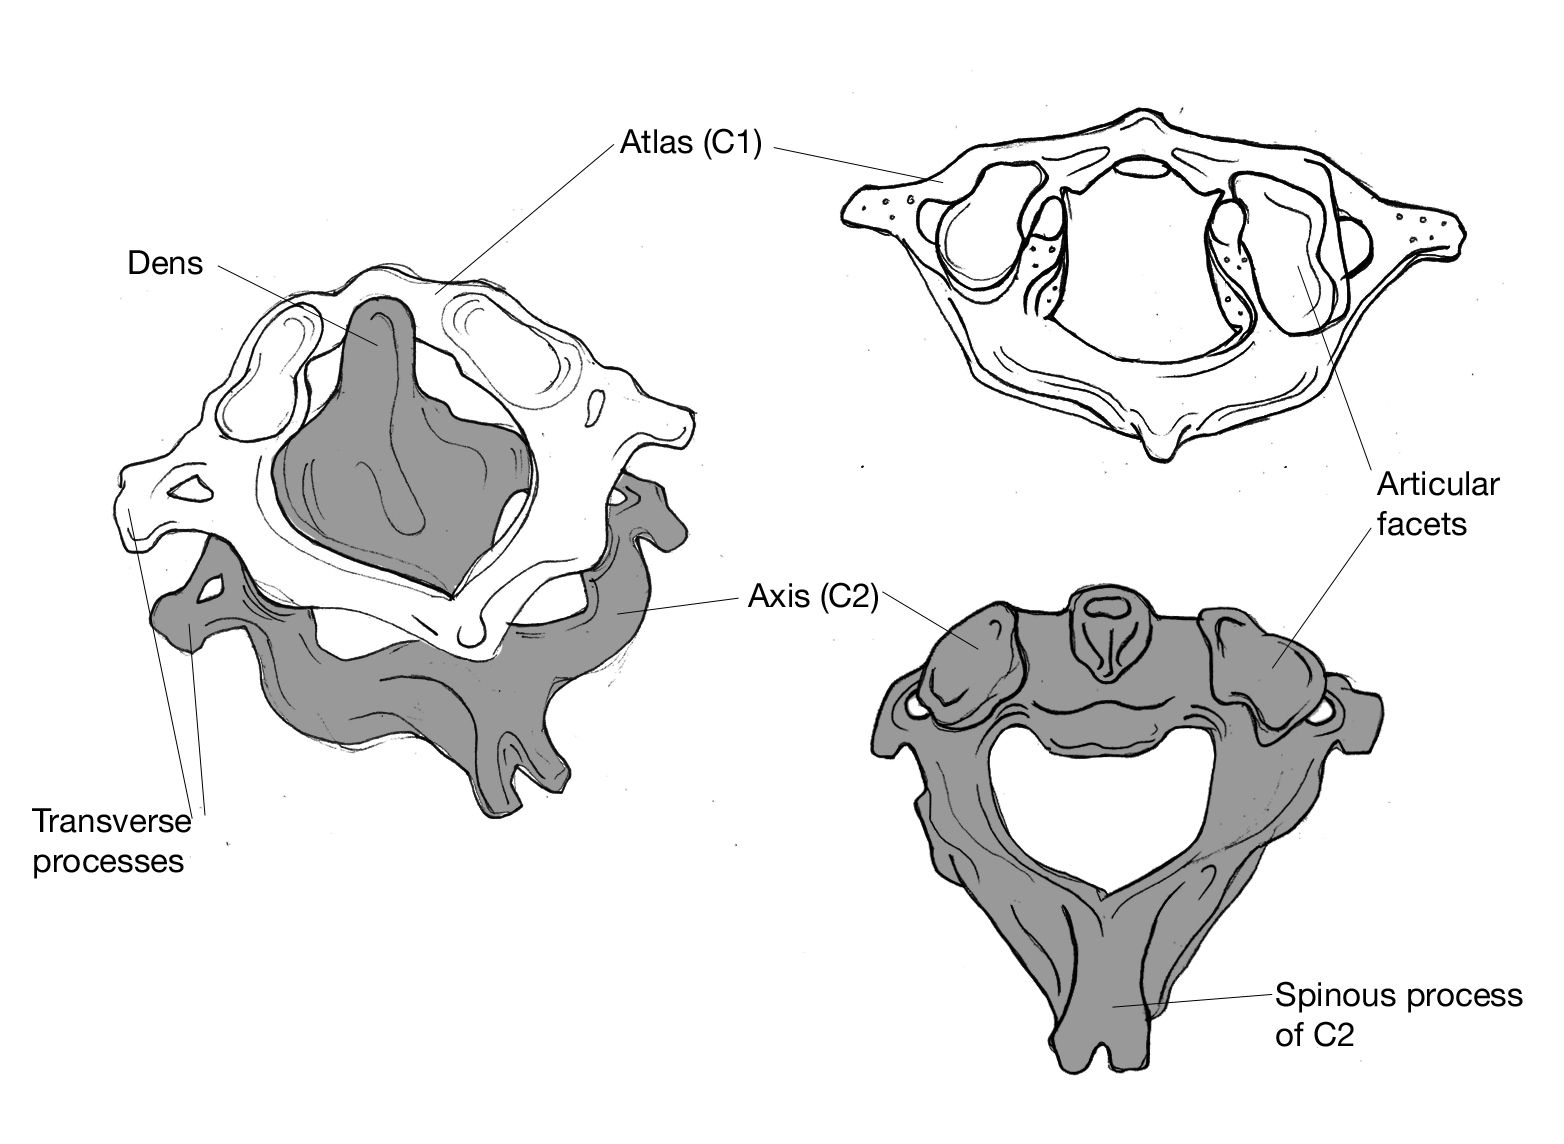 Atlas First Cervical Vertebra Holds Up The Skull And